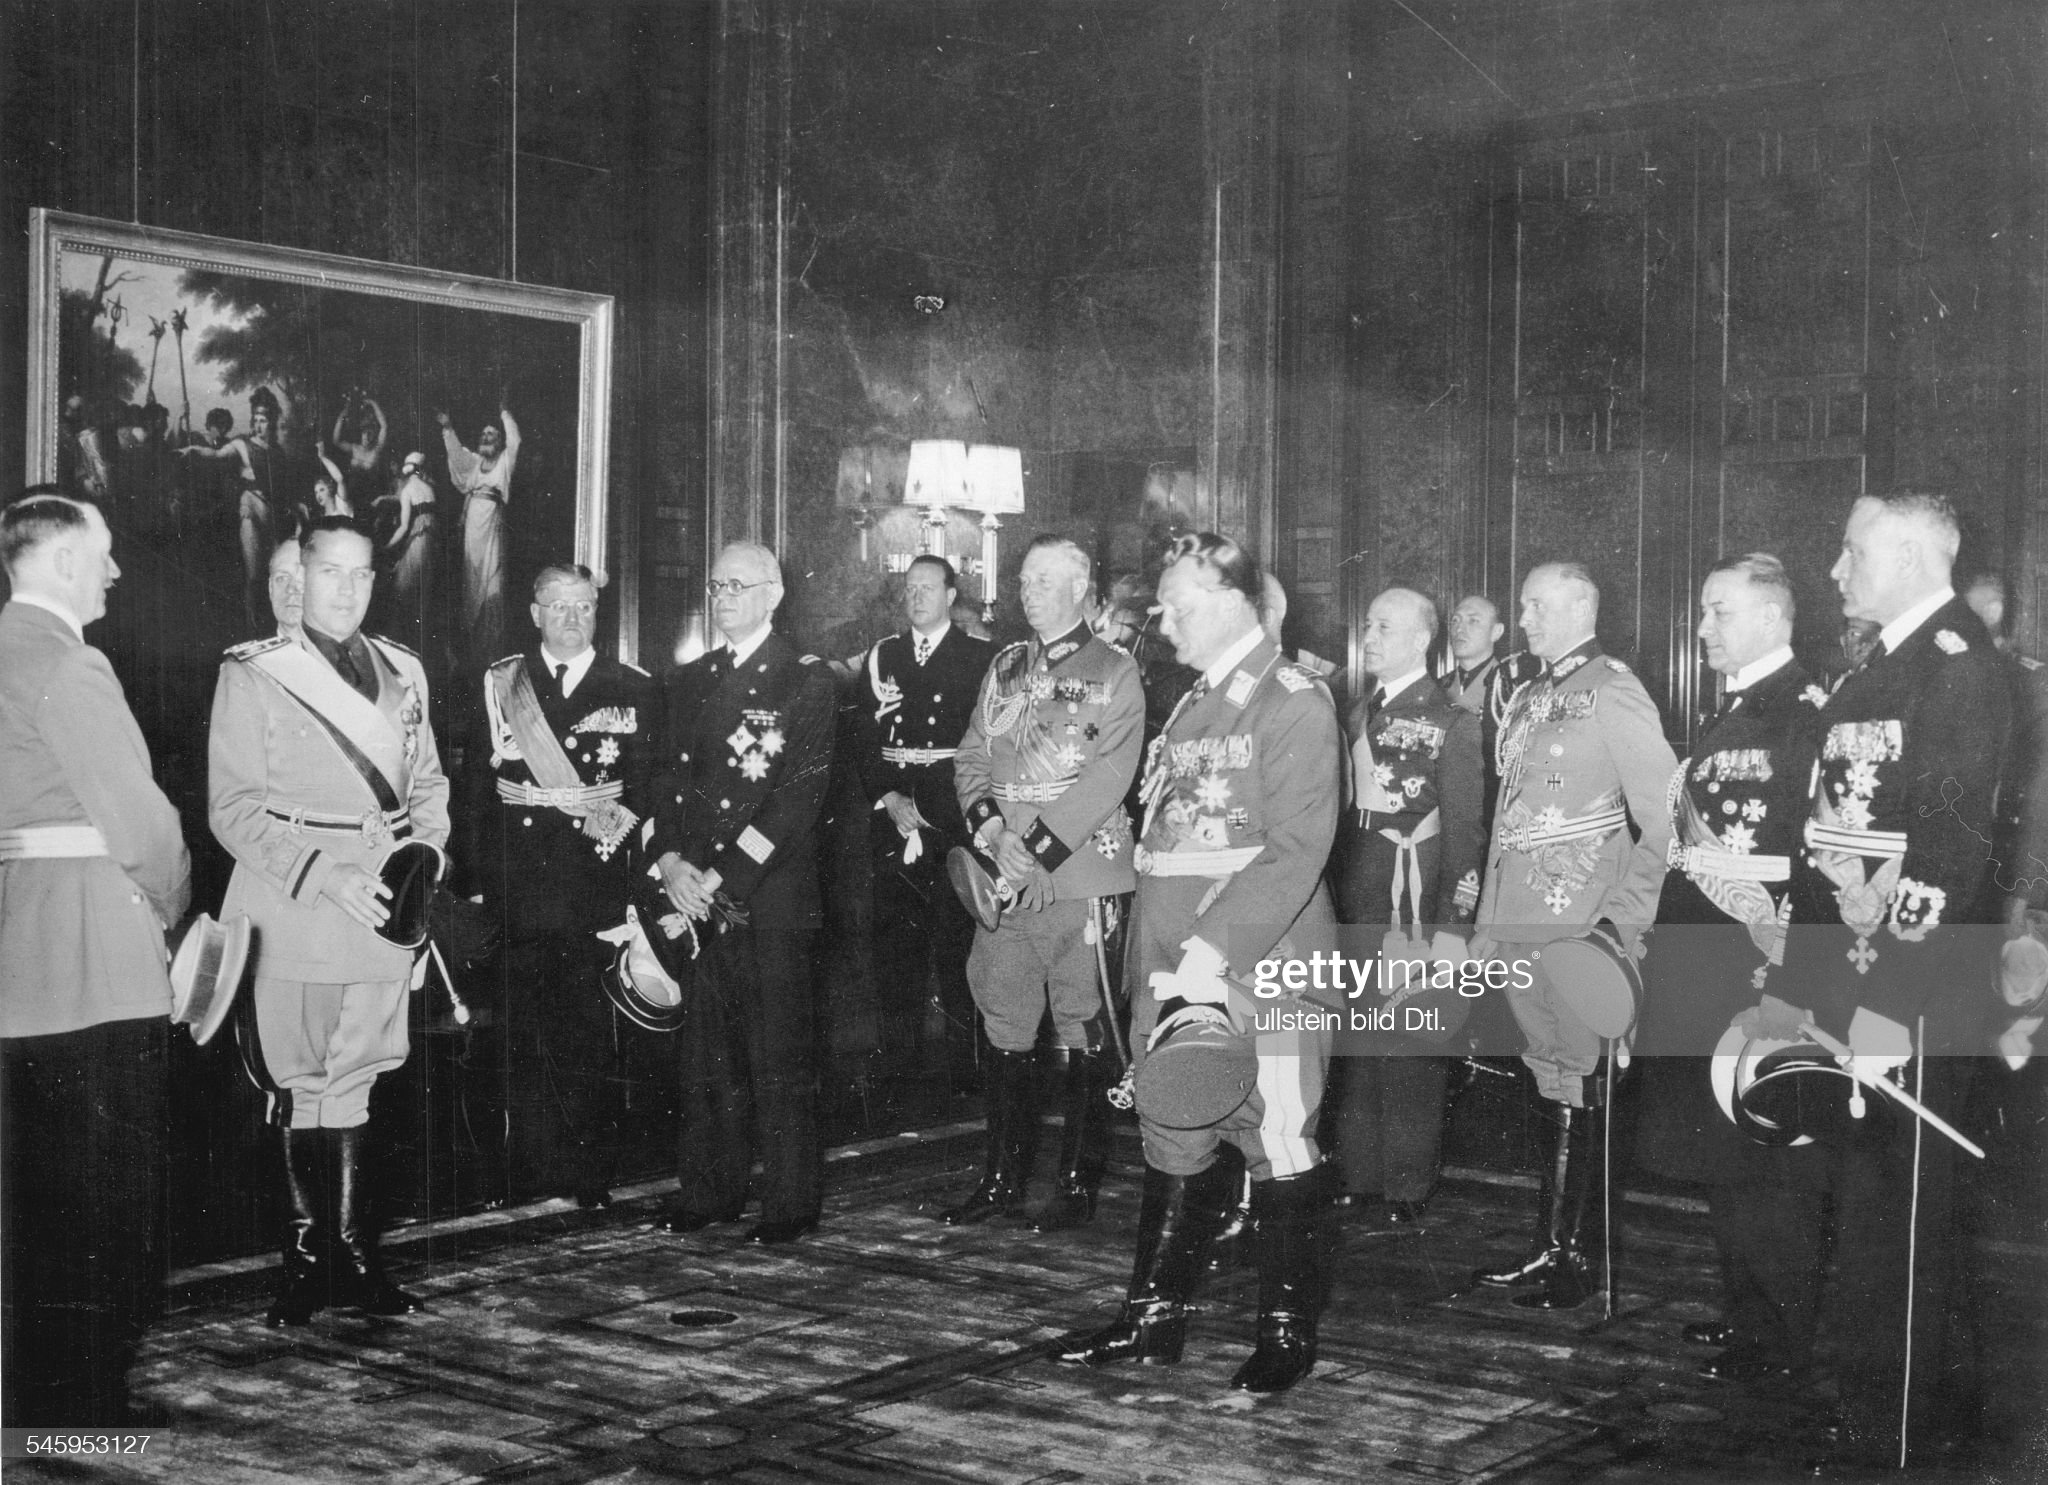 Foreign relations Germany / Italy: Reception in Hitler's study after the signing of the Pact of Steel (Pact of Friendship and Alliance between Germany and Italy) from left: Adolf Hitler, Galeazzo Count Ciano, Joachim voon Ribbentrop (fnearly covered) : Nachrichtenfoto